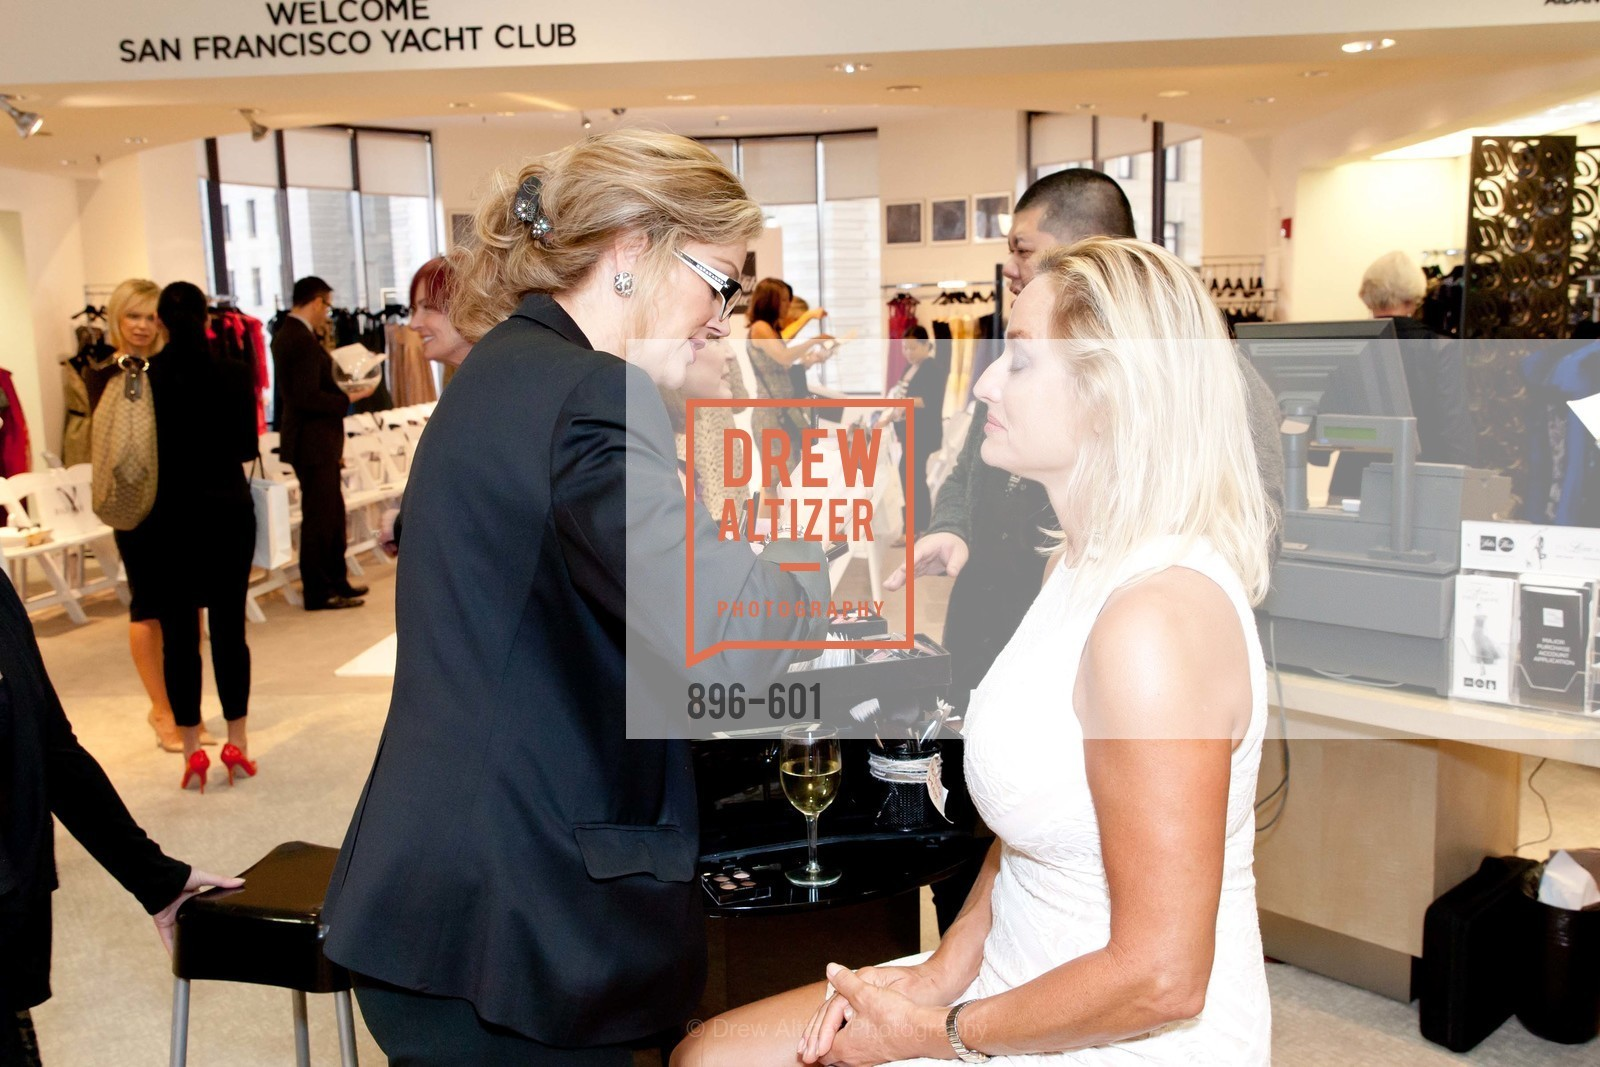 Jolynn Hardiman, SAKS FIFTH AVENUE and HARPER'S BAZAAR Host the San Francisco Yacht Club, US, October 8th, 2014,Drew Altizer, Drew Altizer Photography, full-service agency, private events, San Francisco photographer, photographer california